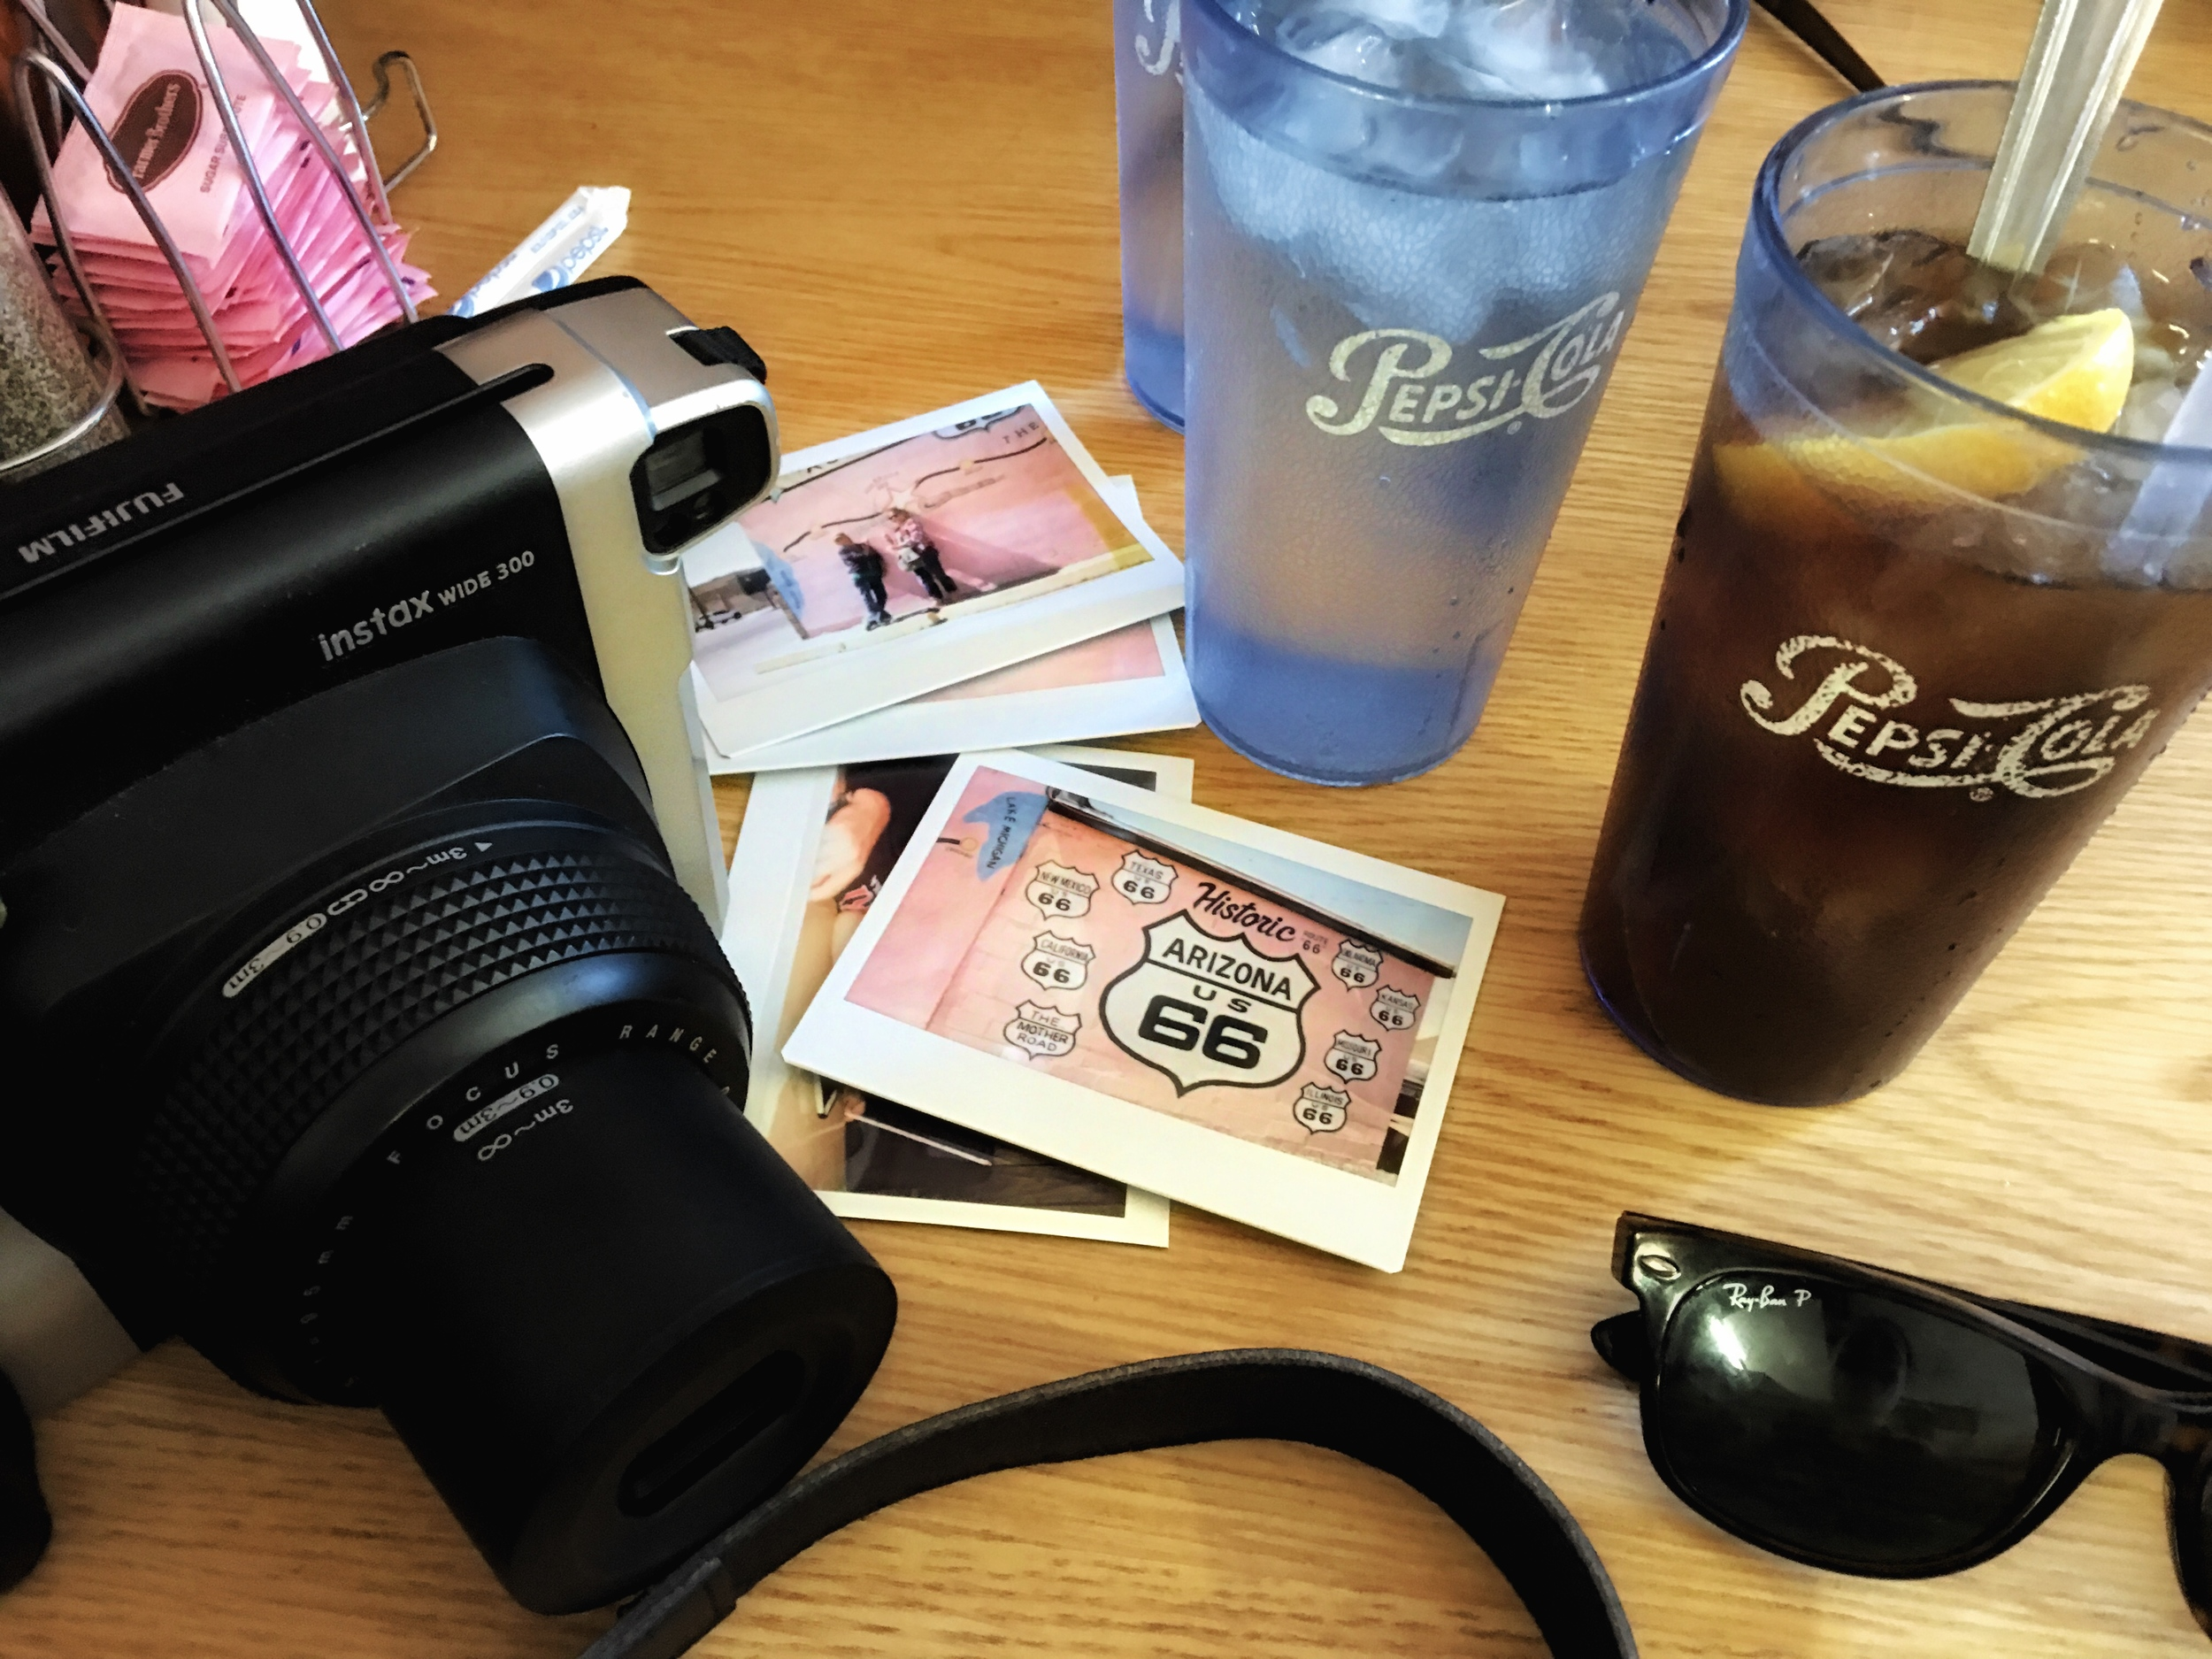 Photographing Americana on Route 66 on the way to Petrified Forest National Park in Arizona... Fujfilm Instax, Pepsi-cola, Ray Ban sunglasses, and America's favorite byway!